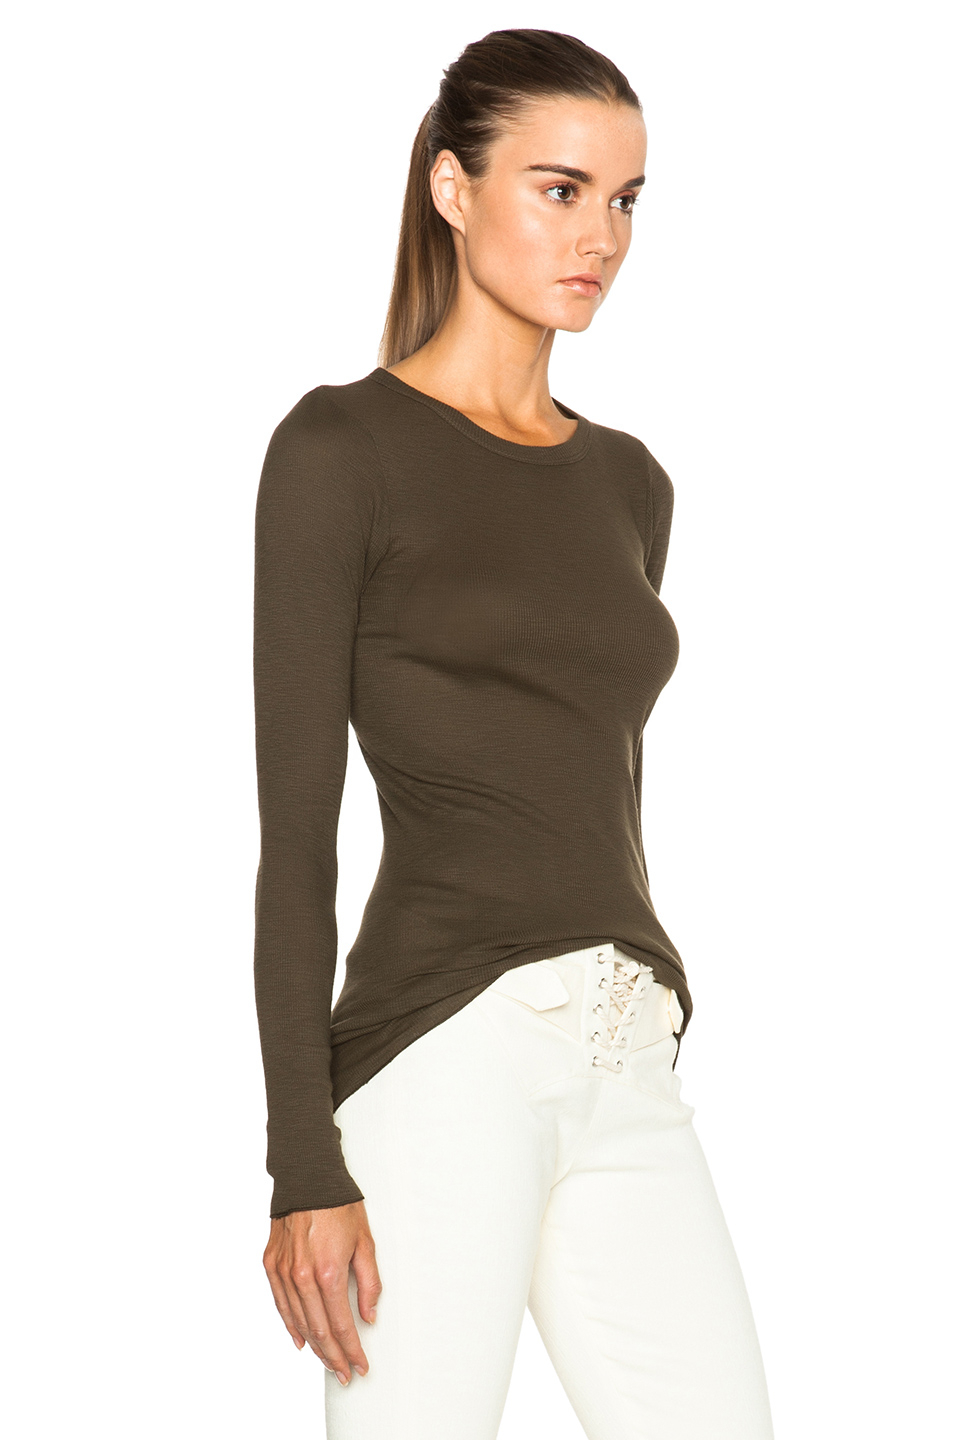 Long Sleeve Drawcord Scoop Top in Black Enza Costa Low Price Cheap Online Best Price New Arrival Cheap Price Outlet Good Selling Get To Buy Online ftjVY4